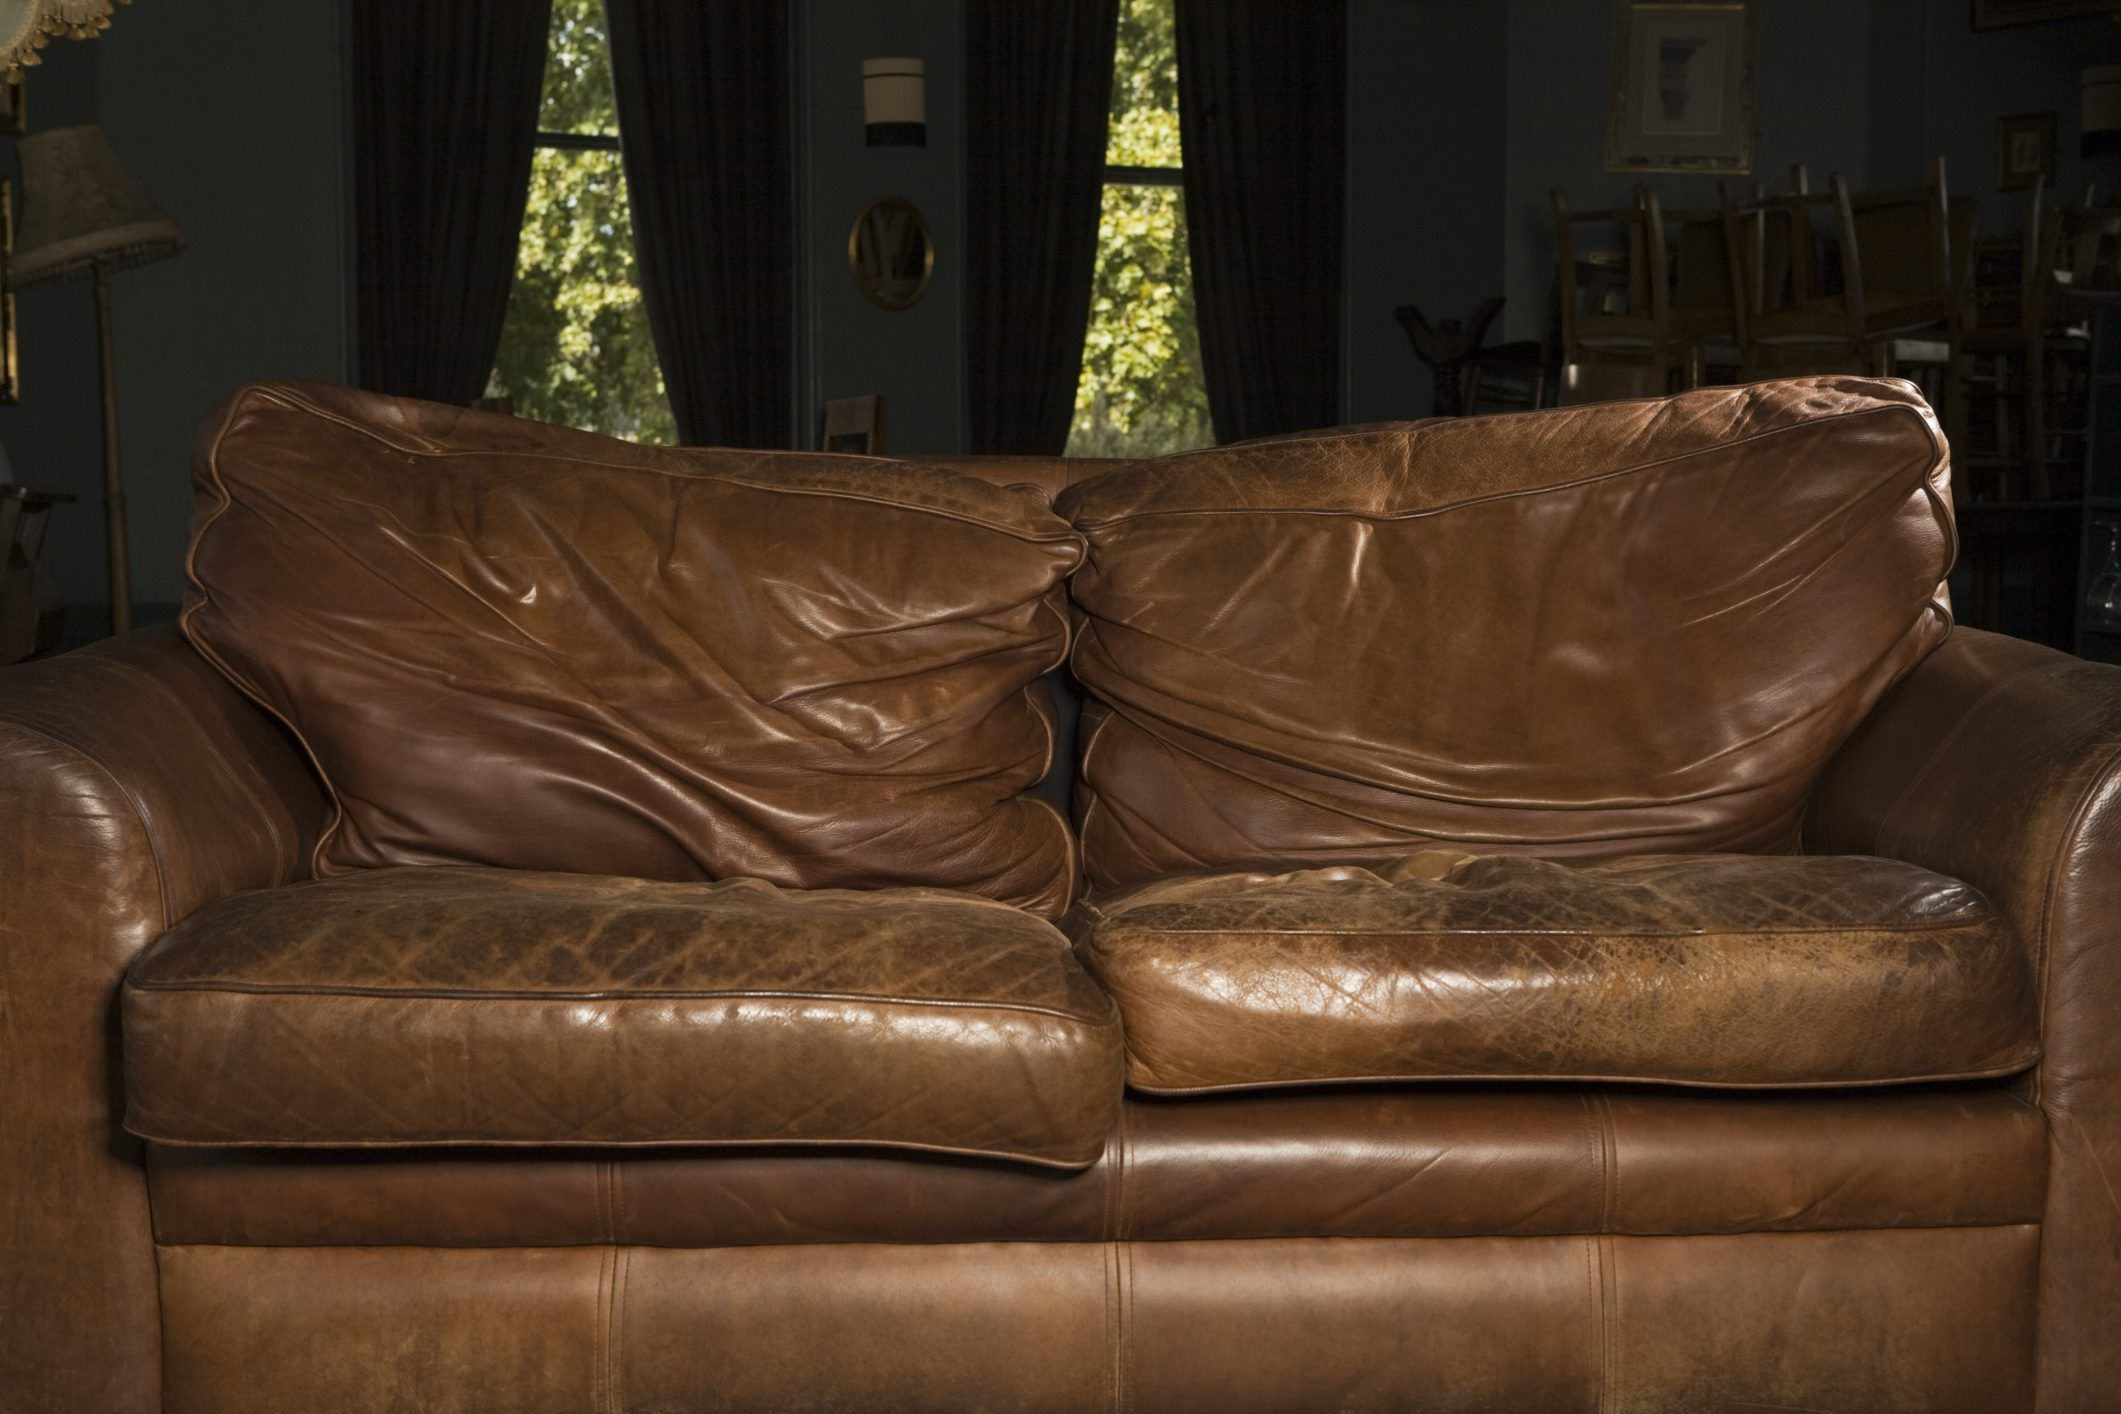 How To Clean Protect Naugahyde Furniture Naugahyde Sometimes Called Artificial Leather Is A Vinyl Faux Leather Couch Leather Couch Cleaning Leather Sofas